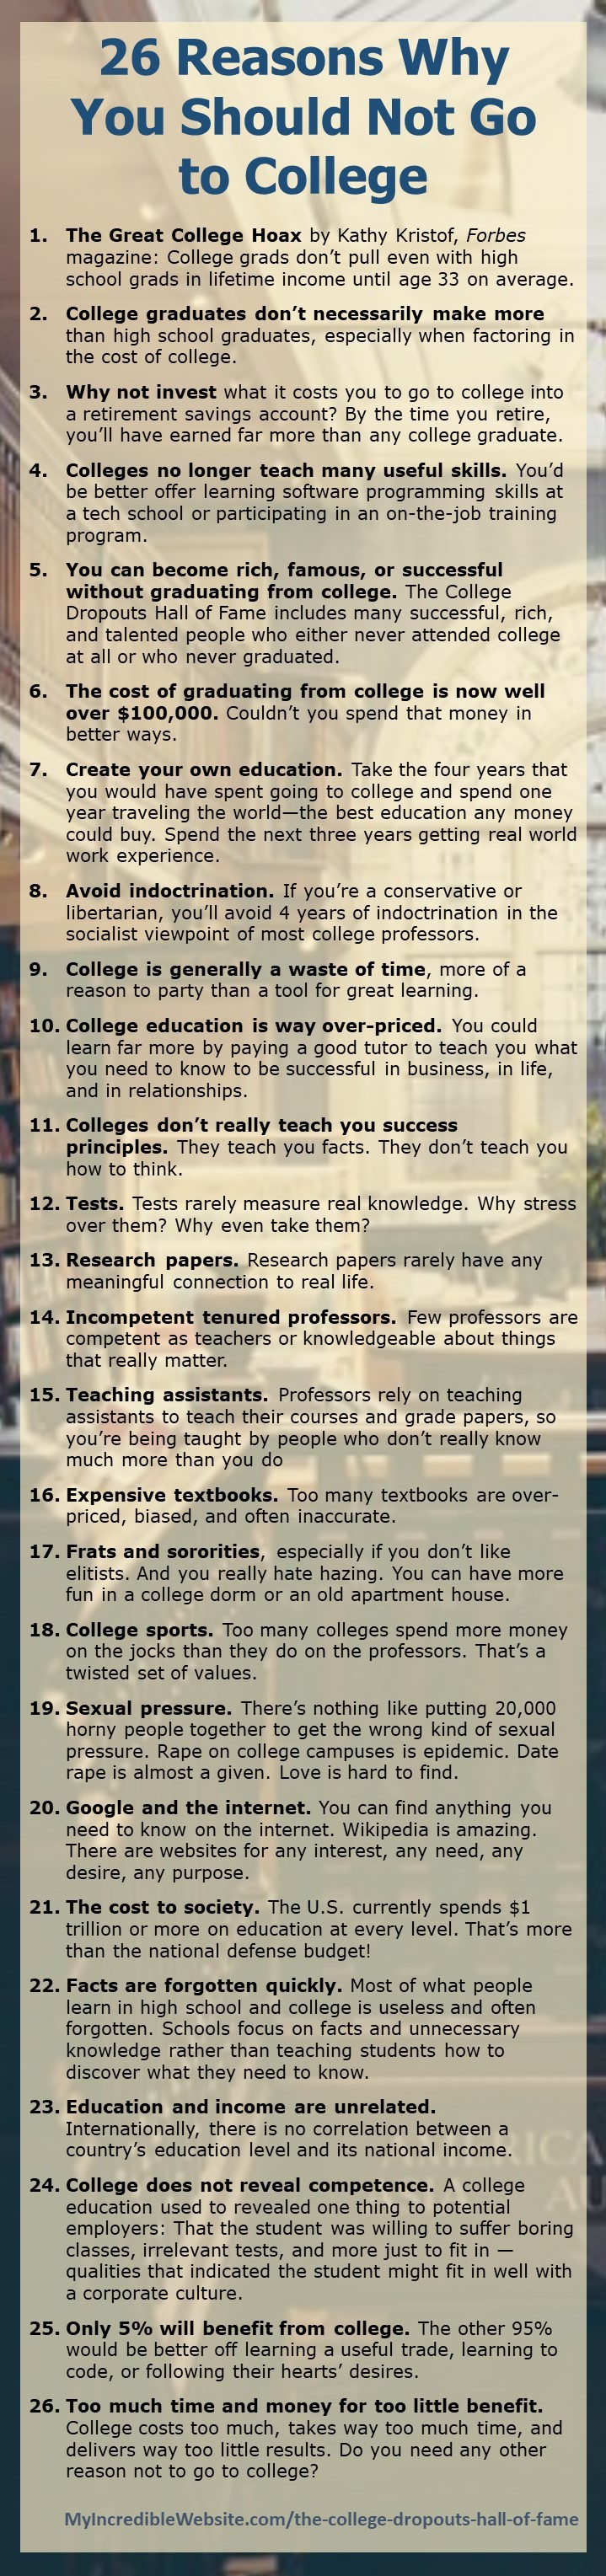 26 Reasons You Should Not Go to College - Skip college and live a great life!